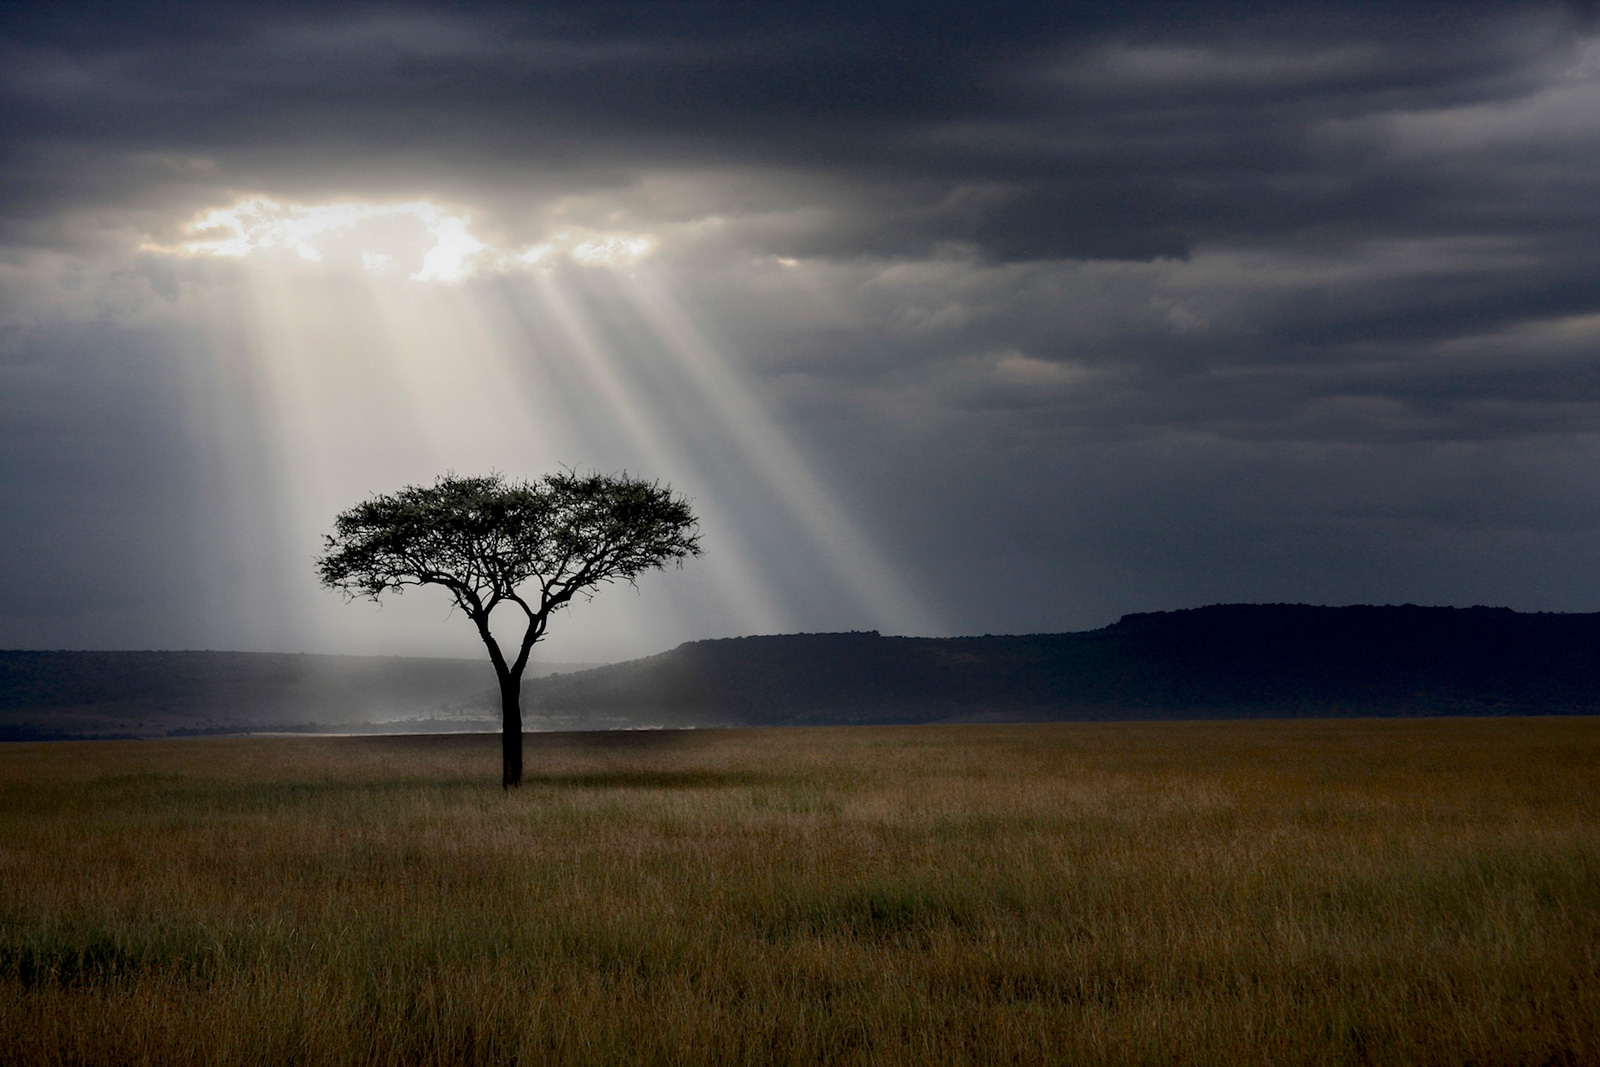 After the storm in Maasai Mara National Reserve, Kenya ©Nicolas de Vaulx